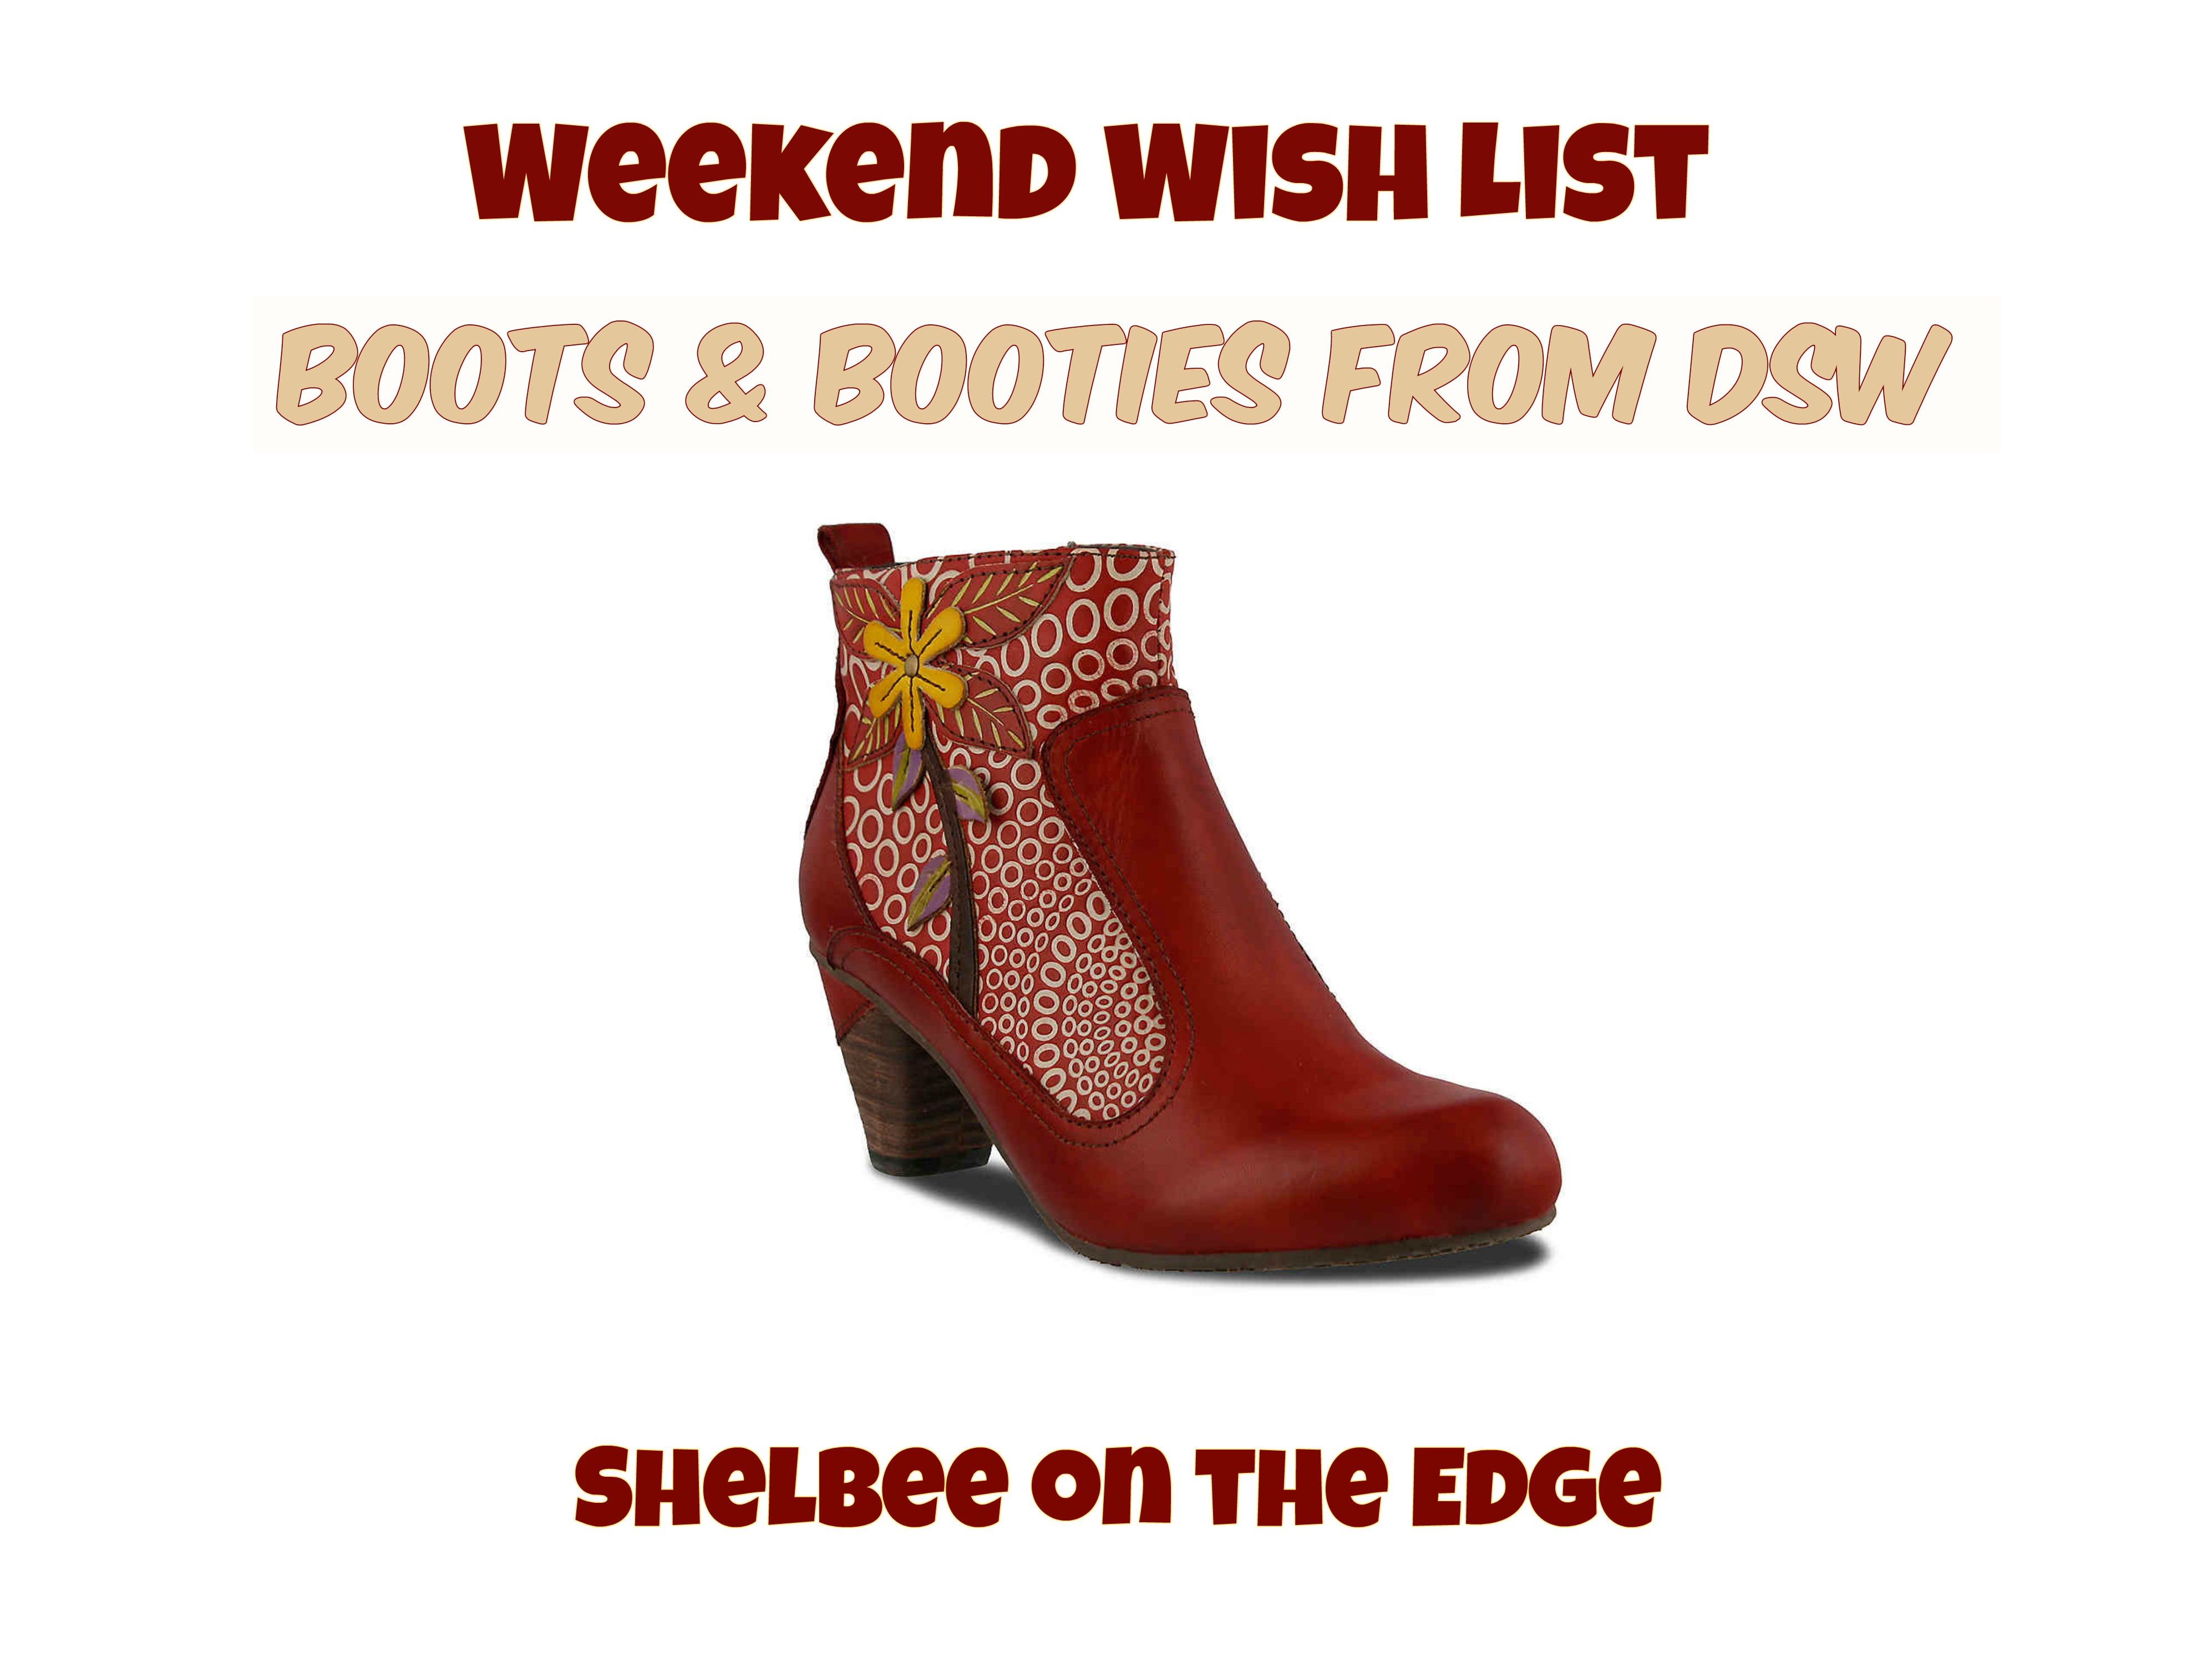 Weekend Wish List: Boots & Booties from DSW